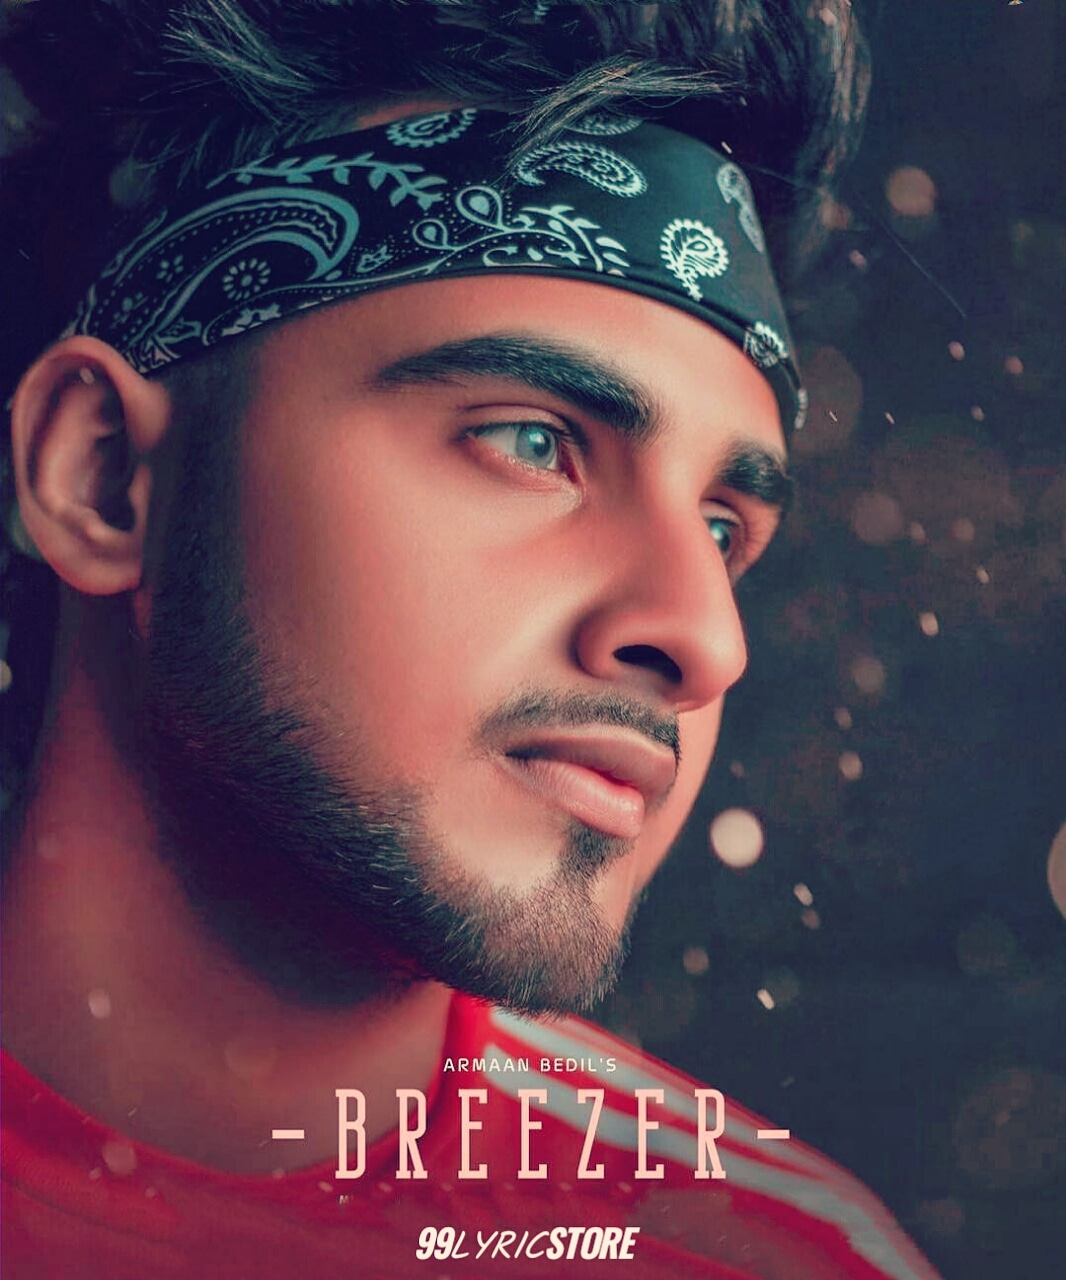 Breezer Punjabi Song Lyrics Sung by Armaan Bedil